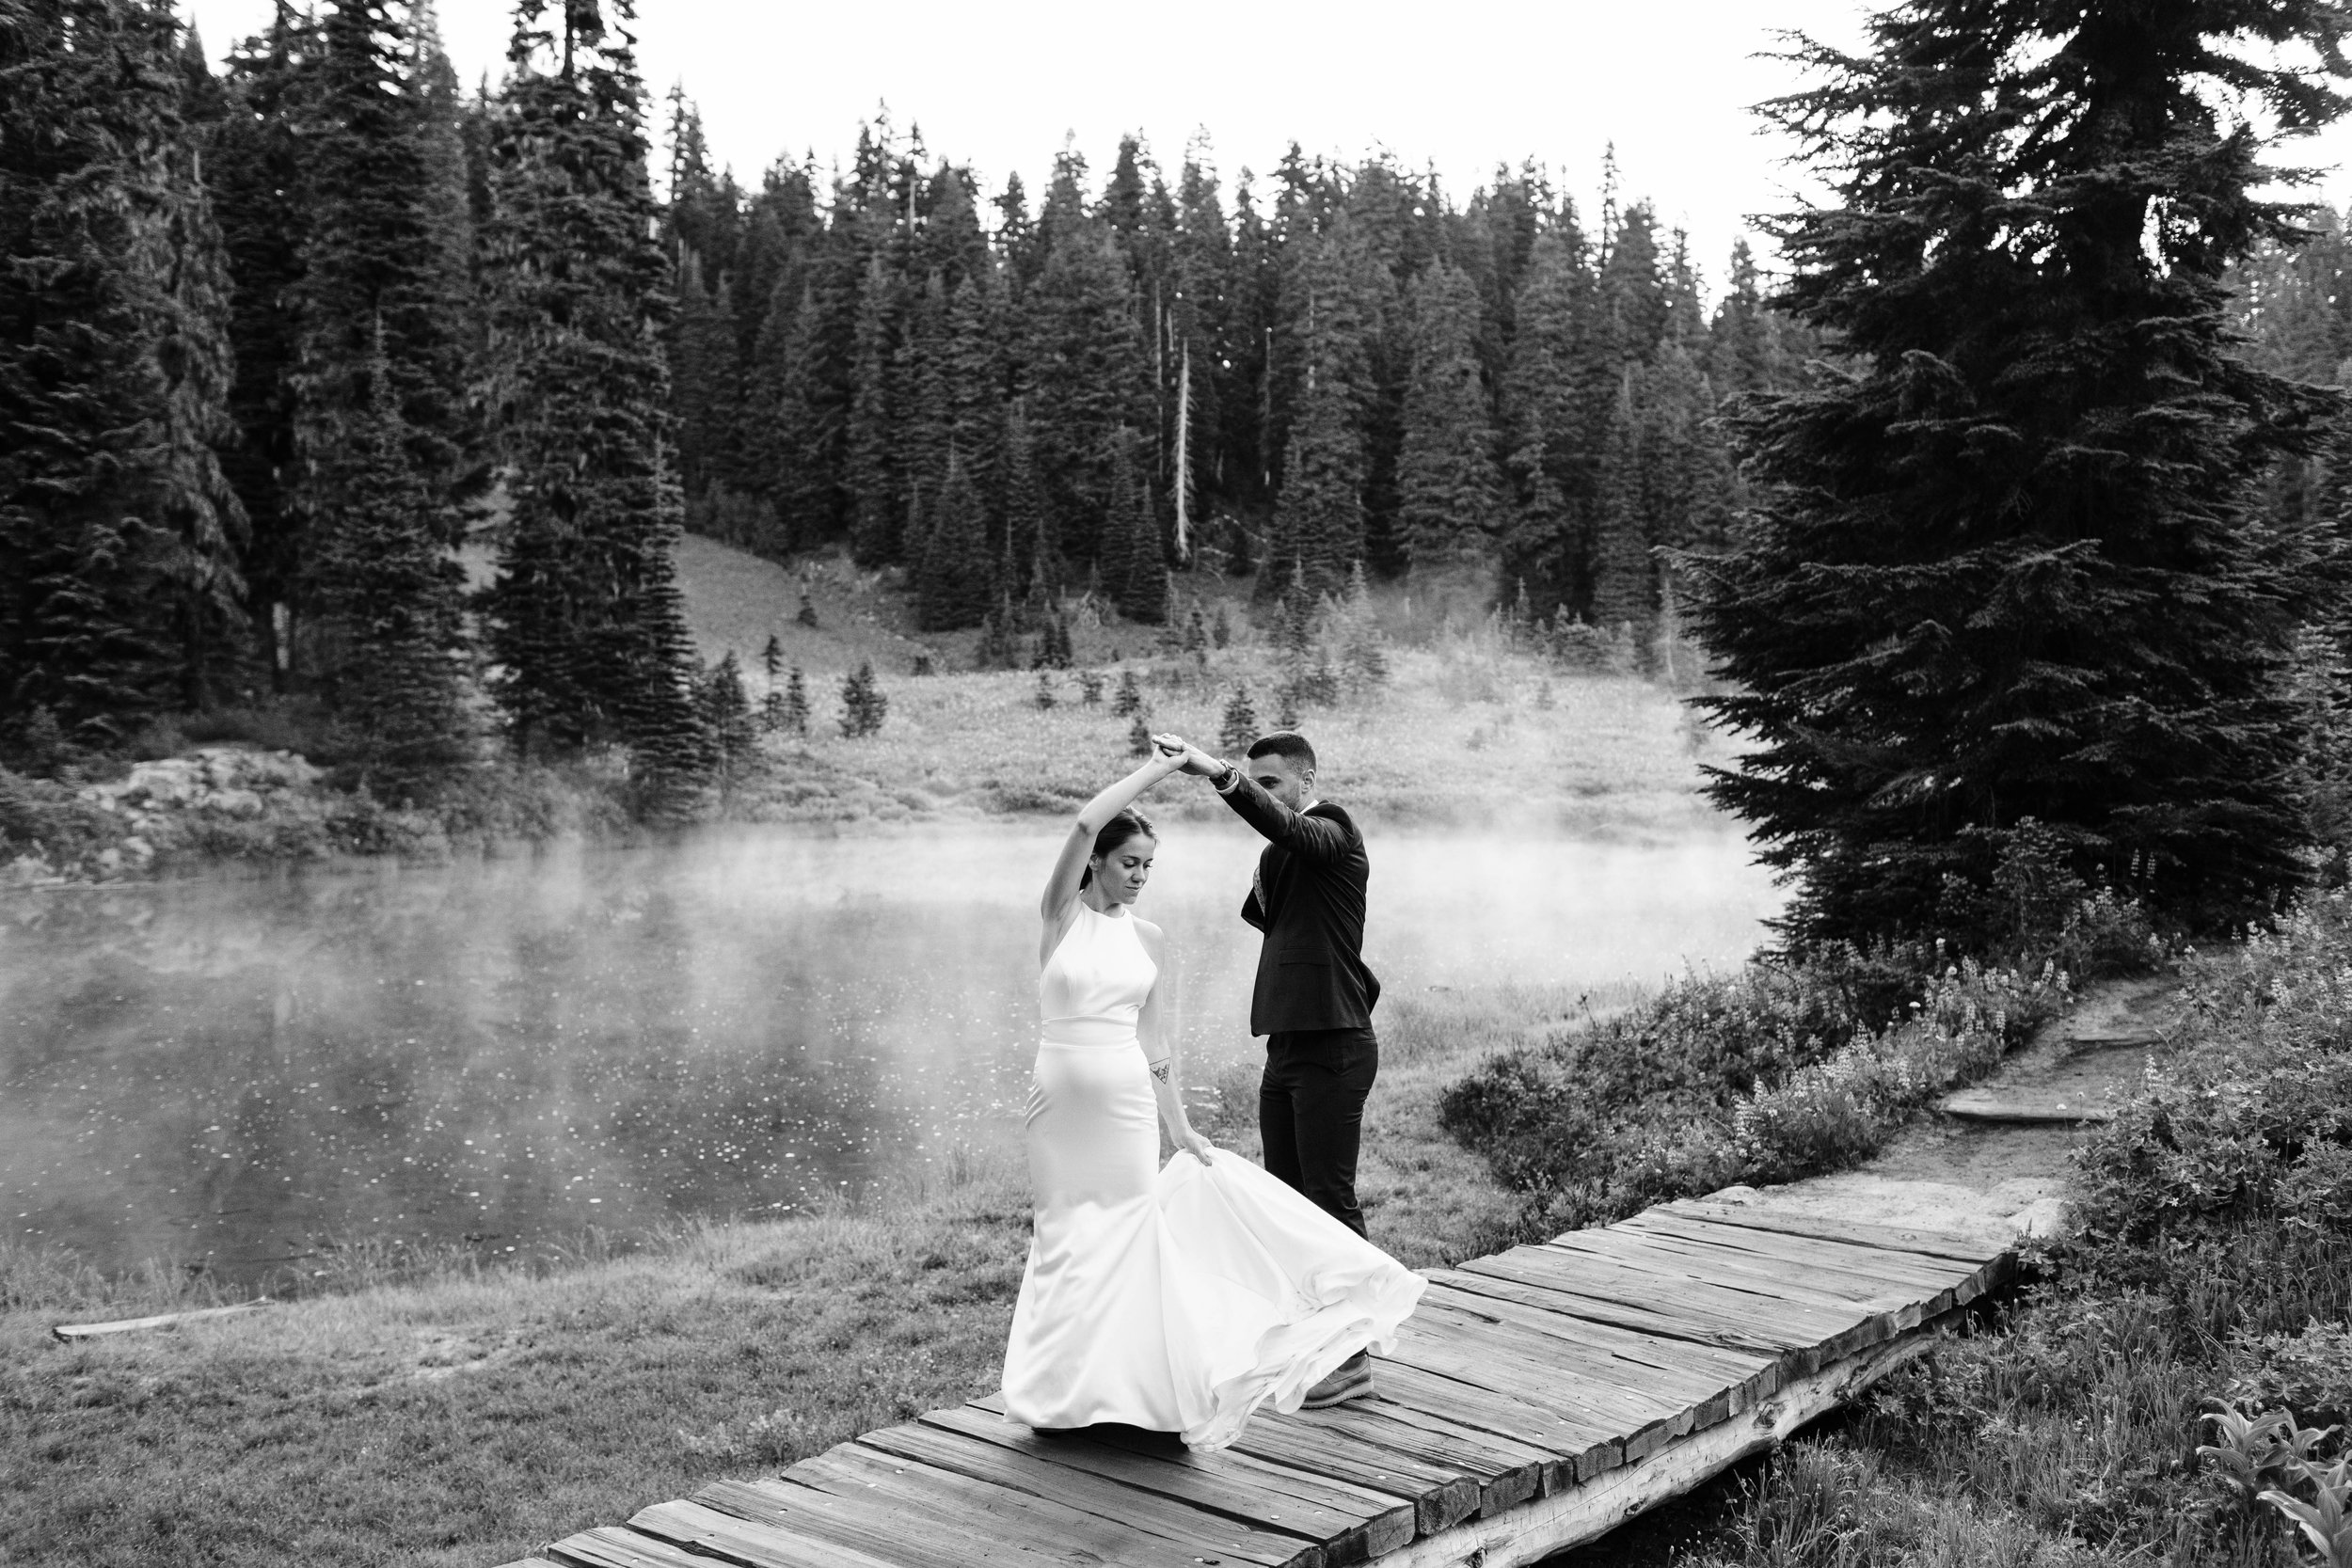 eloping couple dancing by an alpine lake during their Mount Rainier National Park elopement | Washington state adventure wedding photographers